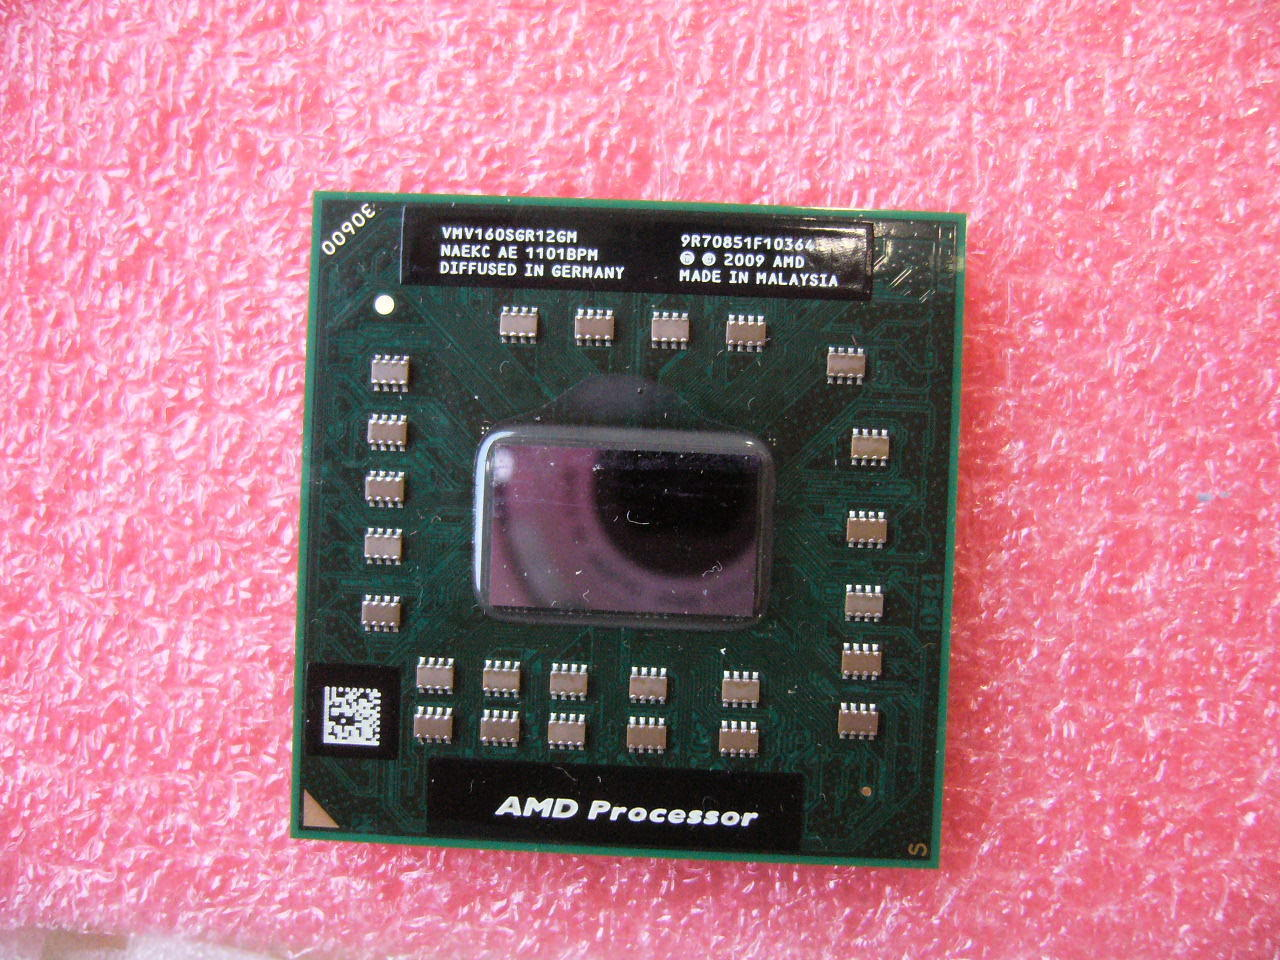 QTY 1x AMD V series V160 2.4GHz Single-Core (VMV160SGR12GM) Laptop CPU Socket S1